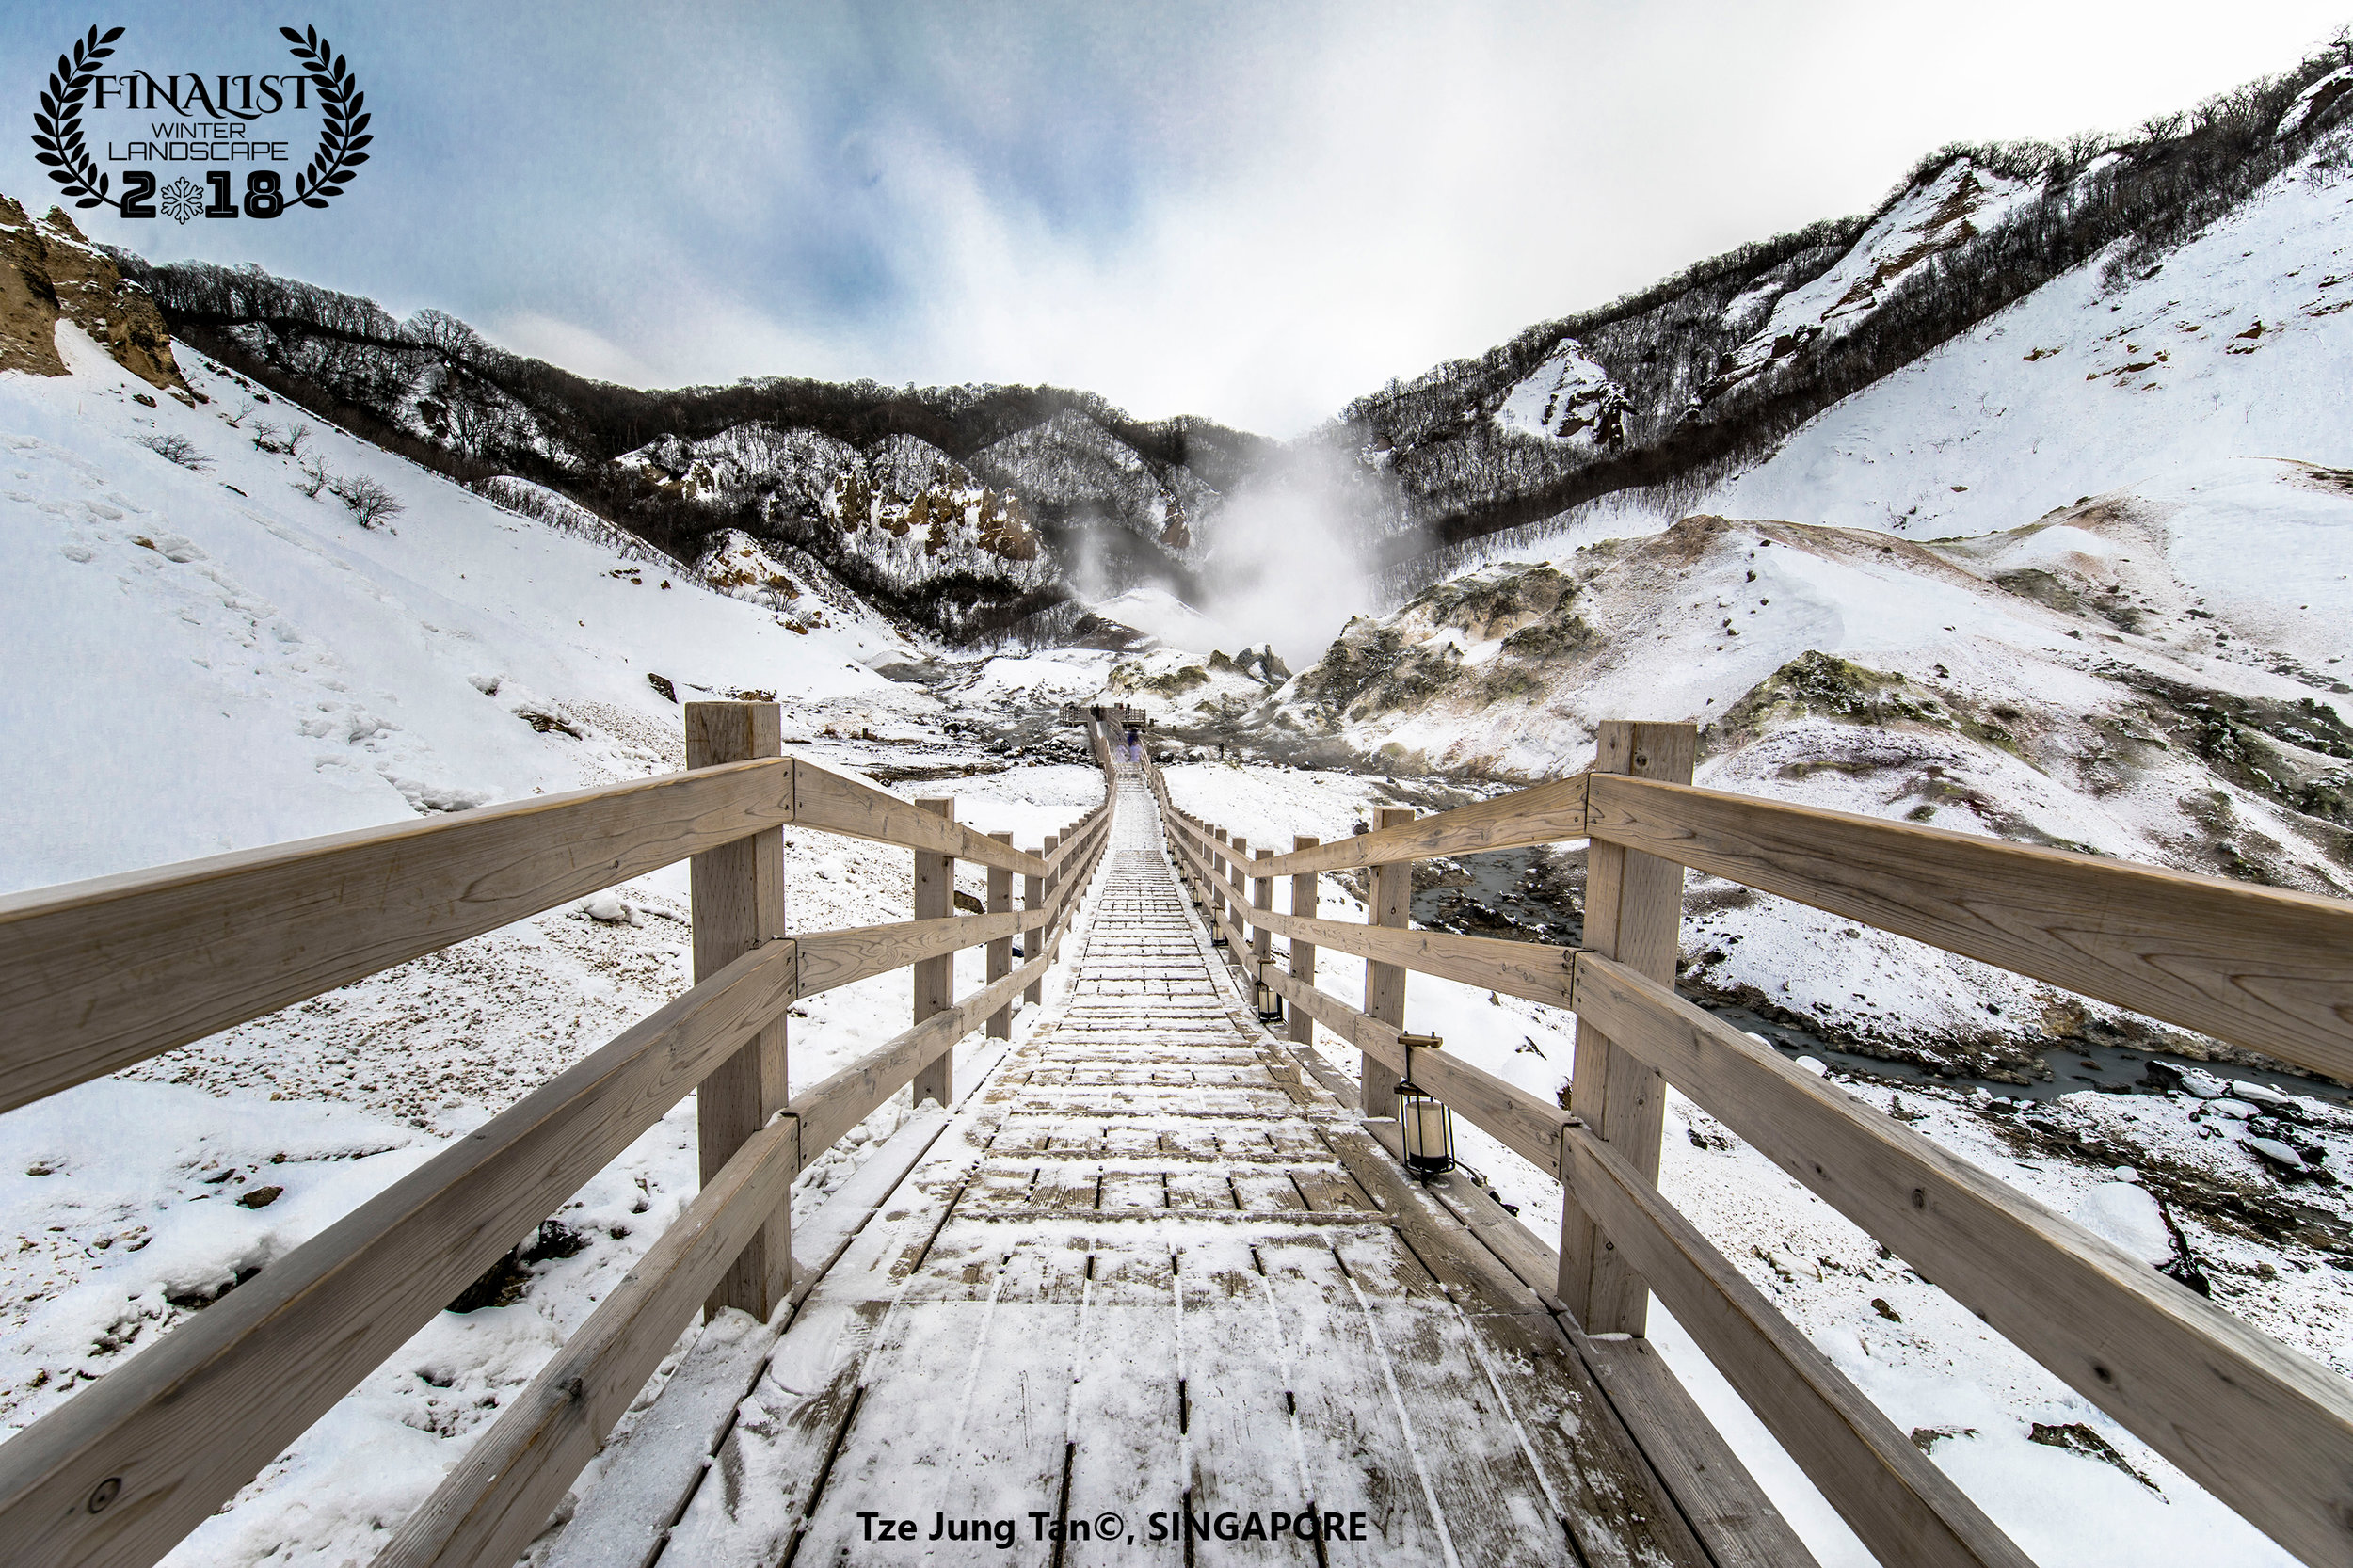 """Noboribetsu, Hokkaido:  'A trip to Hell Valley'   """"Amidst the snowy, frigid landscape rises Hell Valley, a geothermal crater formed from a volcanic eruption 20,000 years ago. It evokes scenes of what hell might look like with its boiling sulfuric hot springs and volcanic steam plumes.""""  Photographer: Tze Jung Tan, SINGAPORE"""